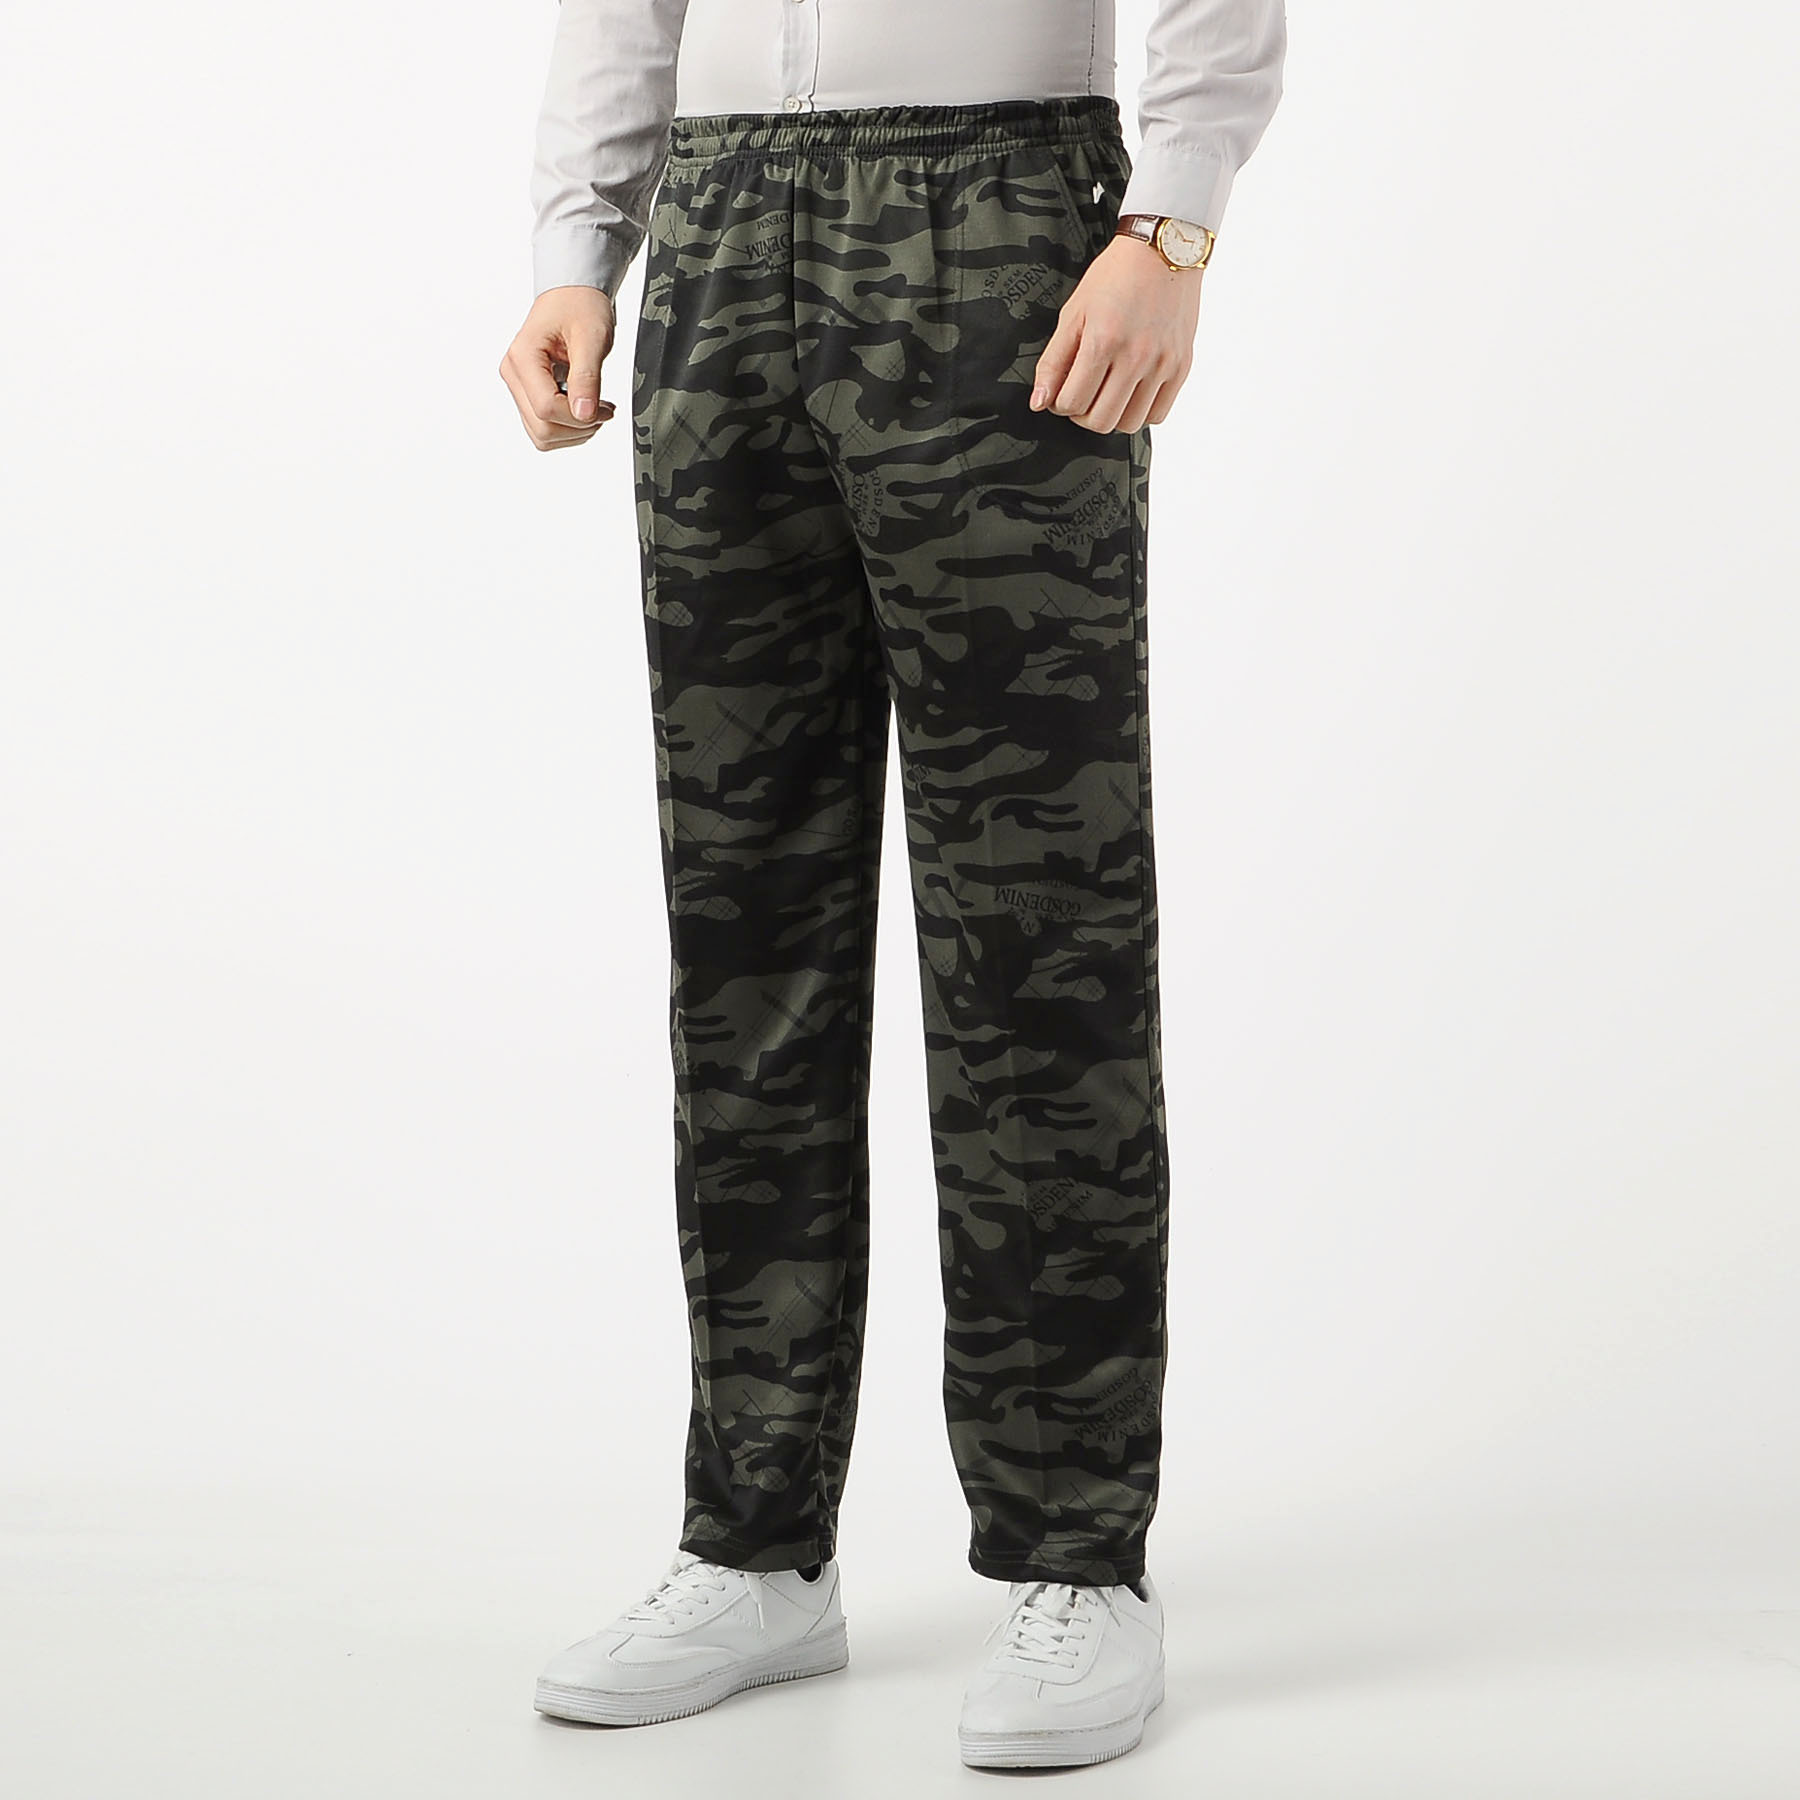 Men Casual Athletic Pants Camouflage Trousers Breathable Knitted Work Pants Men's Amount-